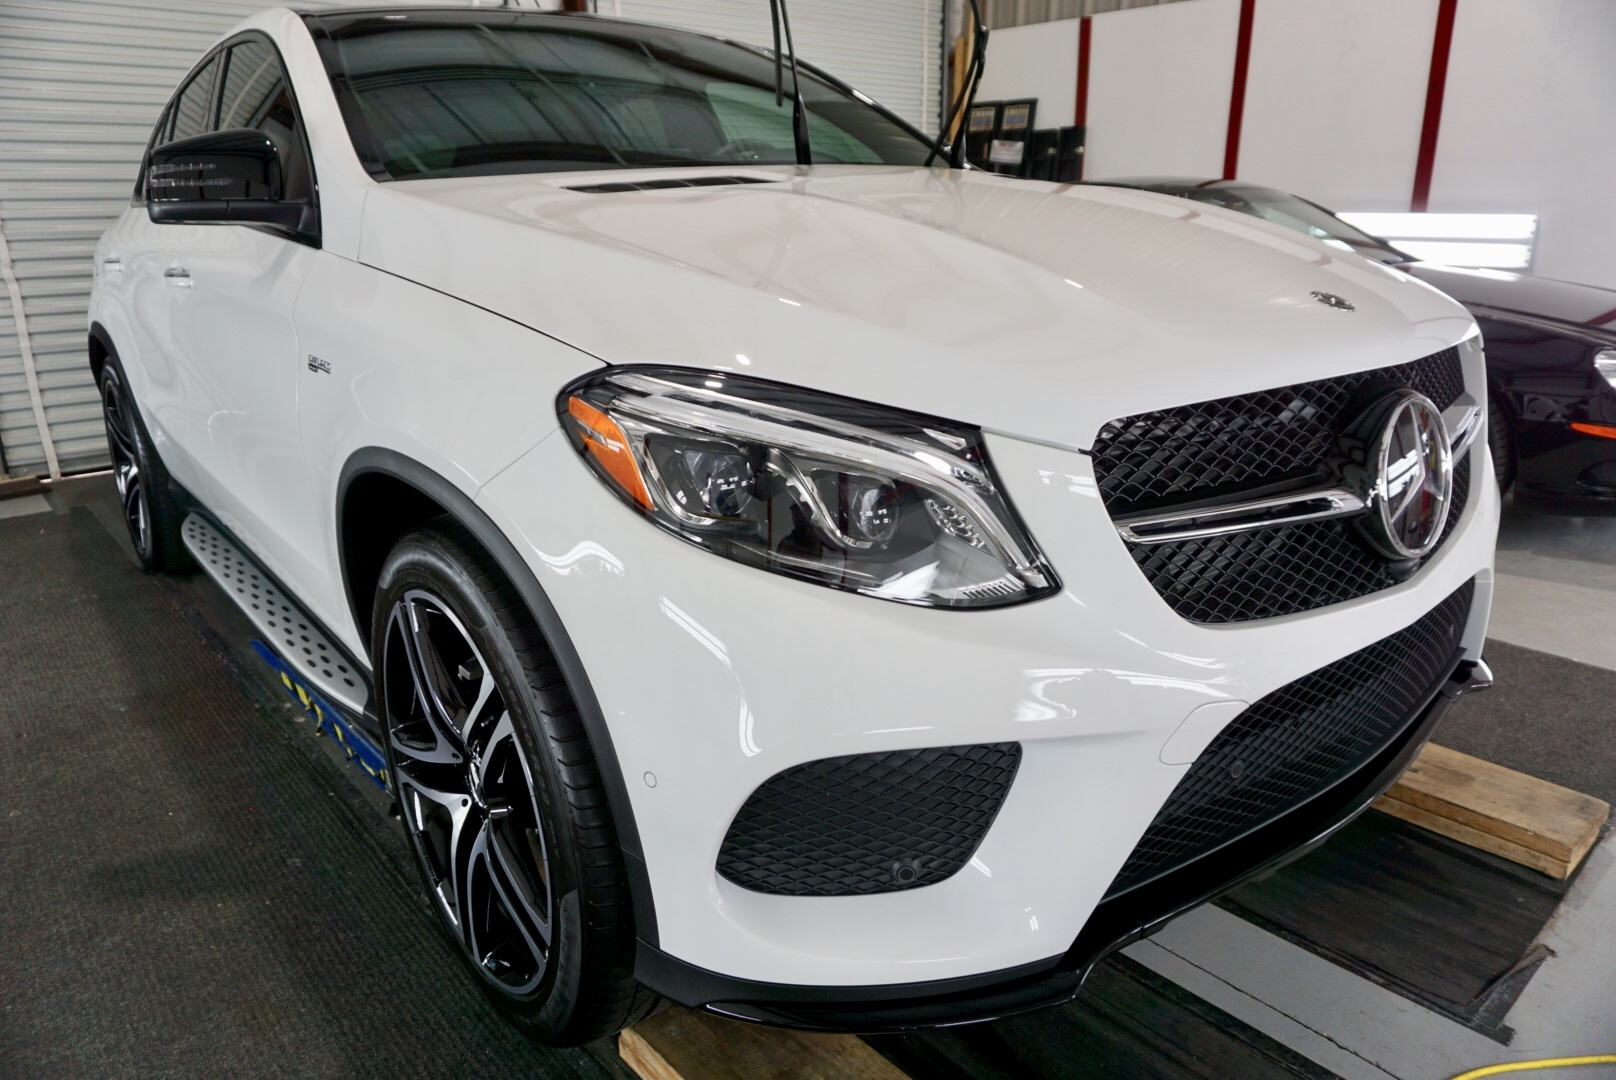 New Car Preparation Package of 2019 Mercedes GLE Class